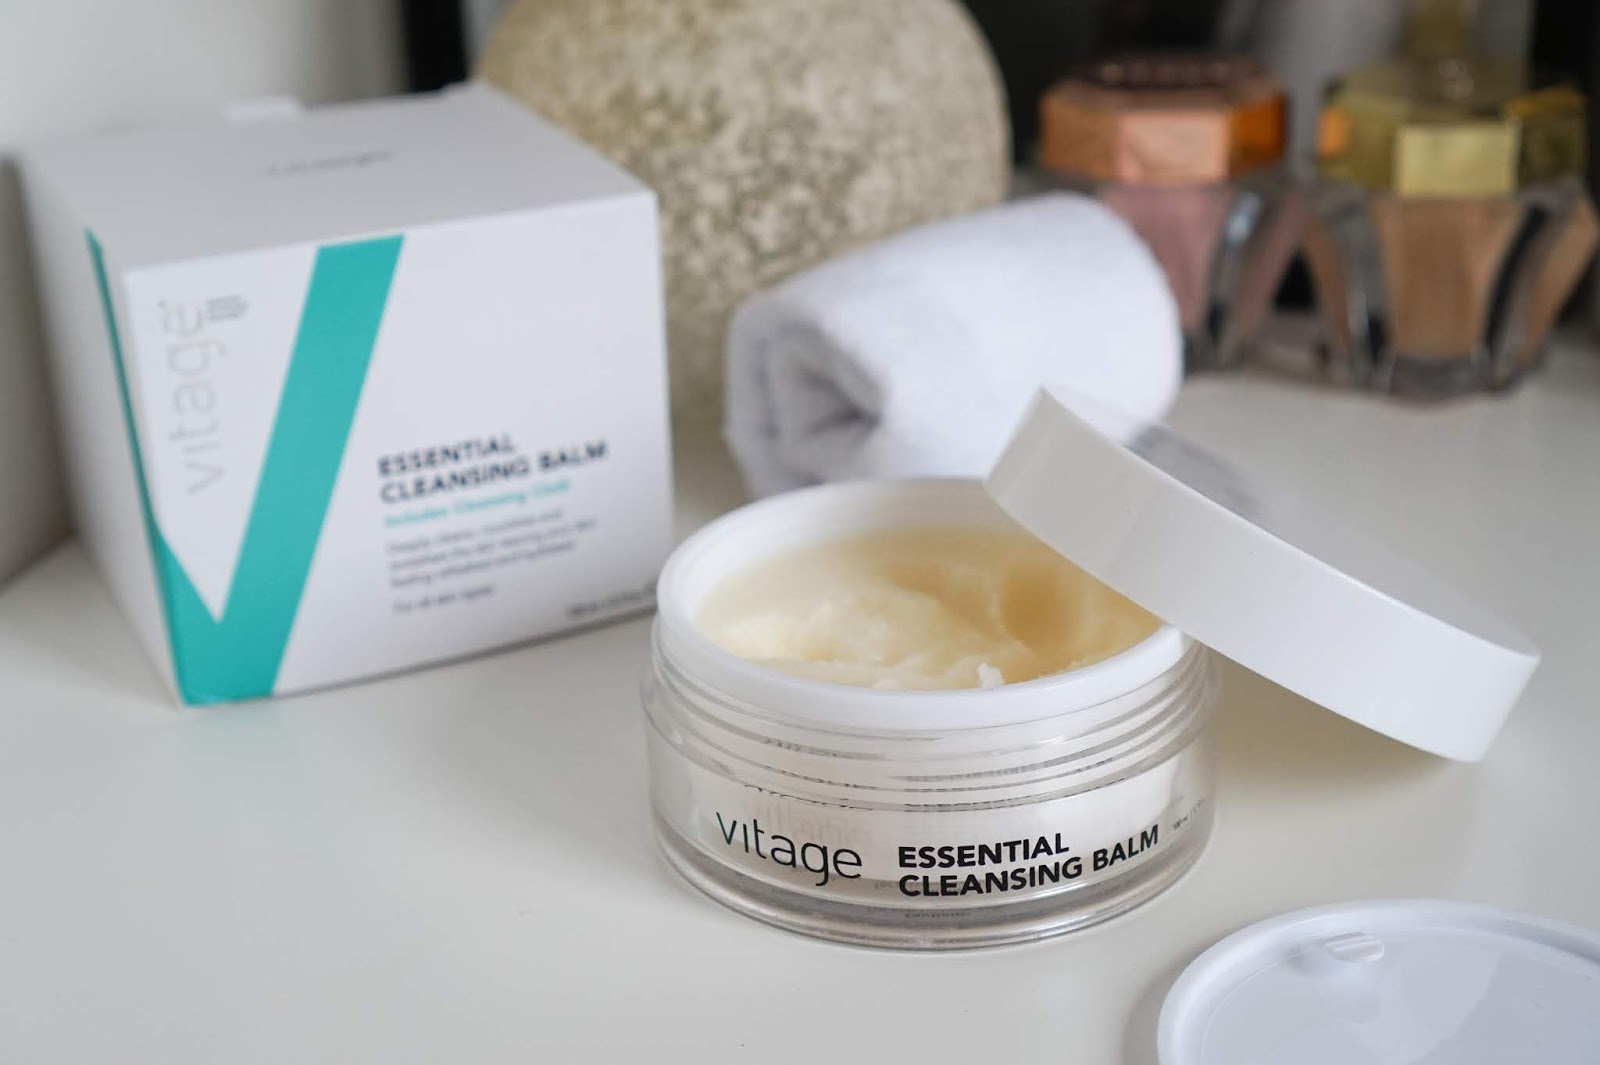 Vitage_Essential_Cleansing_Balm